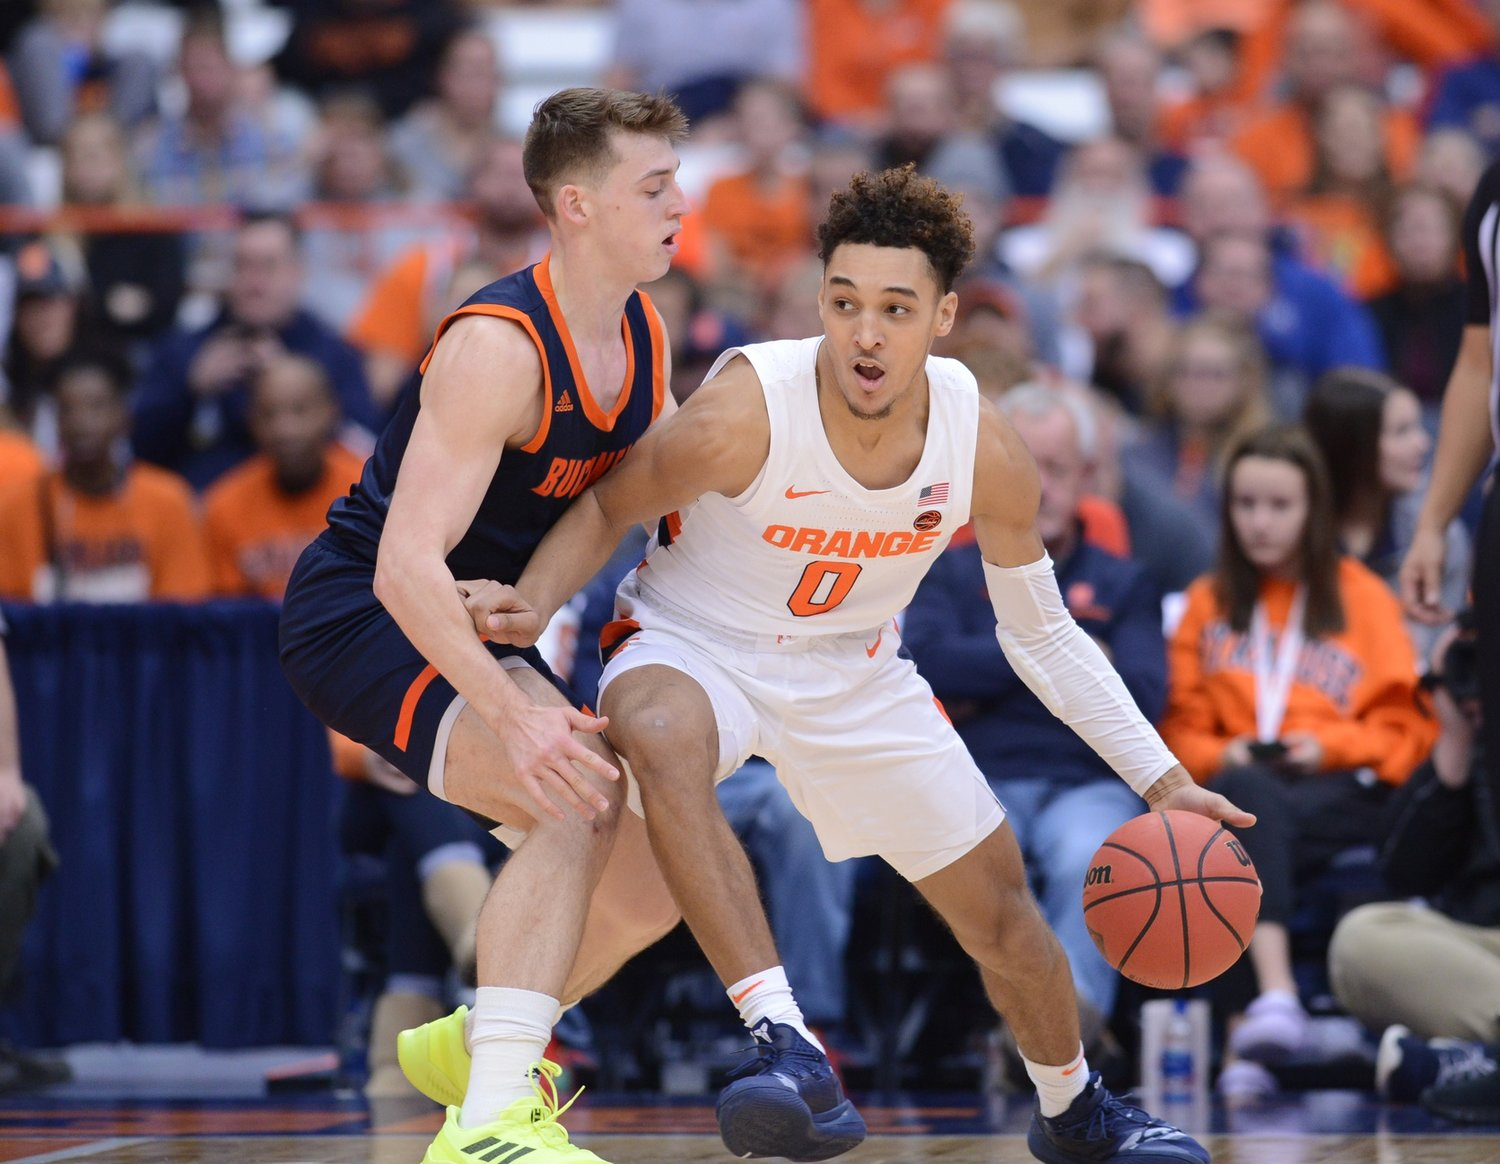 Brycen Goodine (right) was a standout at St. Andrew's School in Barrington. He then played for Syracuse and is now transferring to PC.